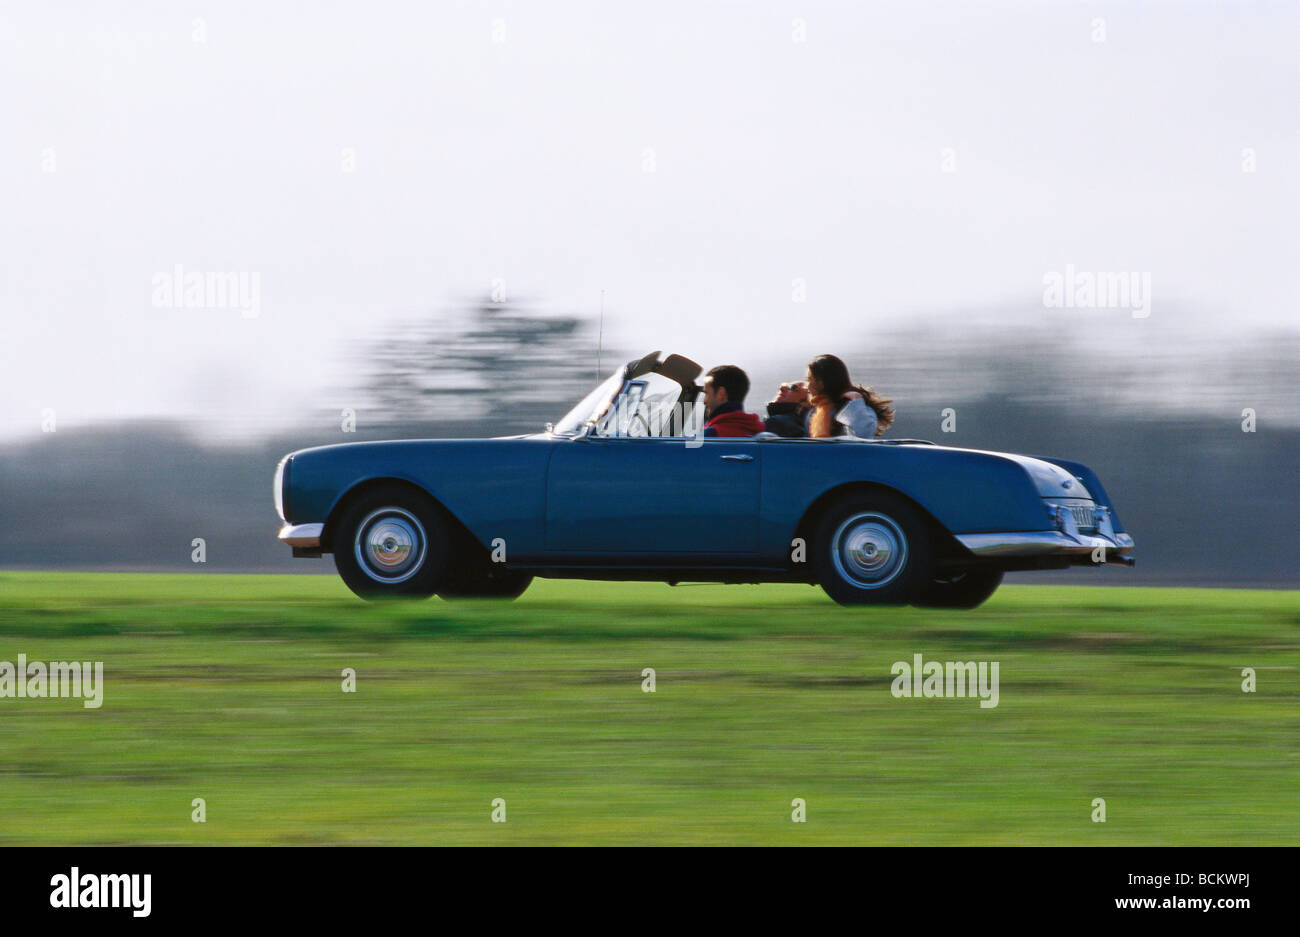 People riding in convertible car - Stock Image